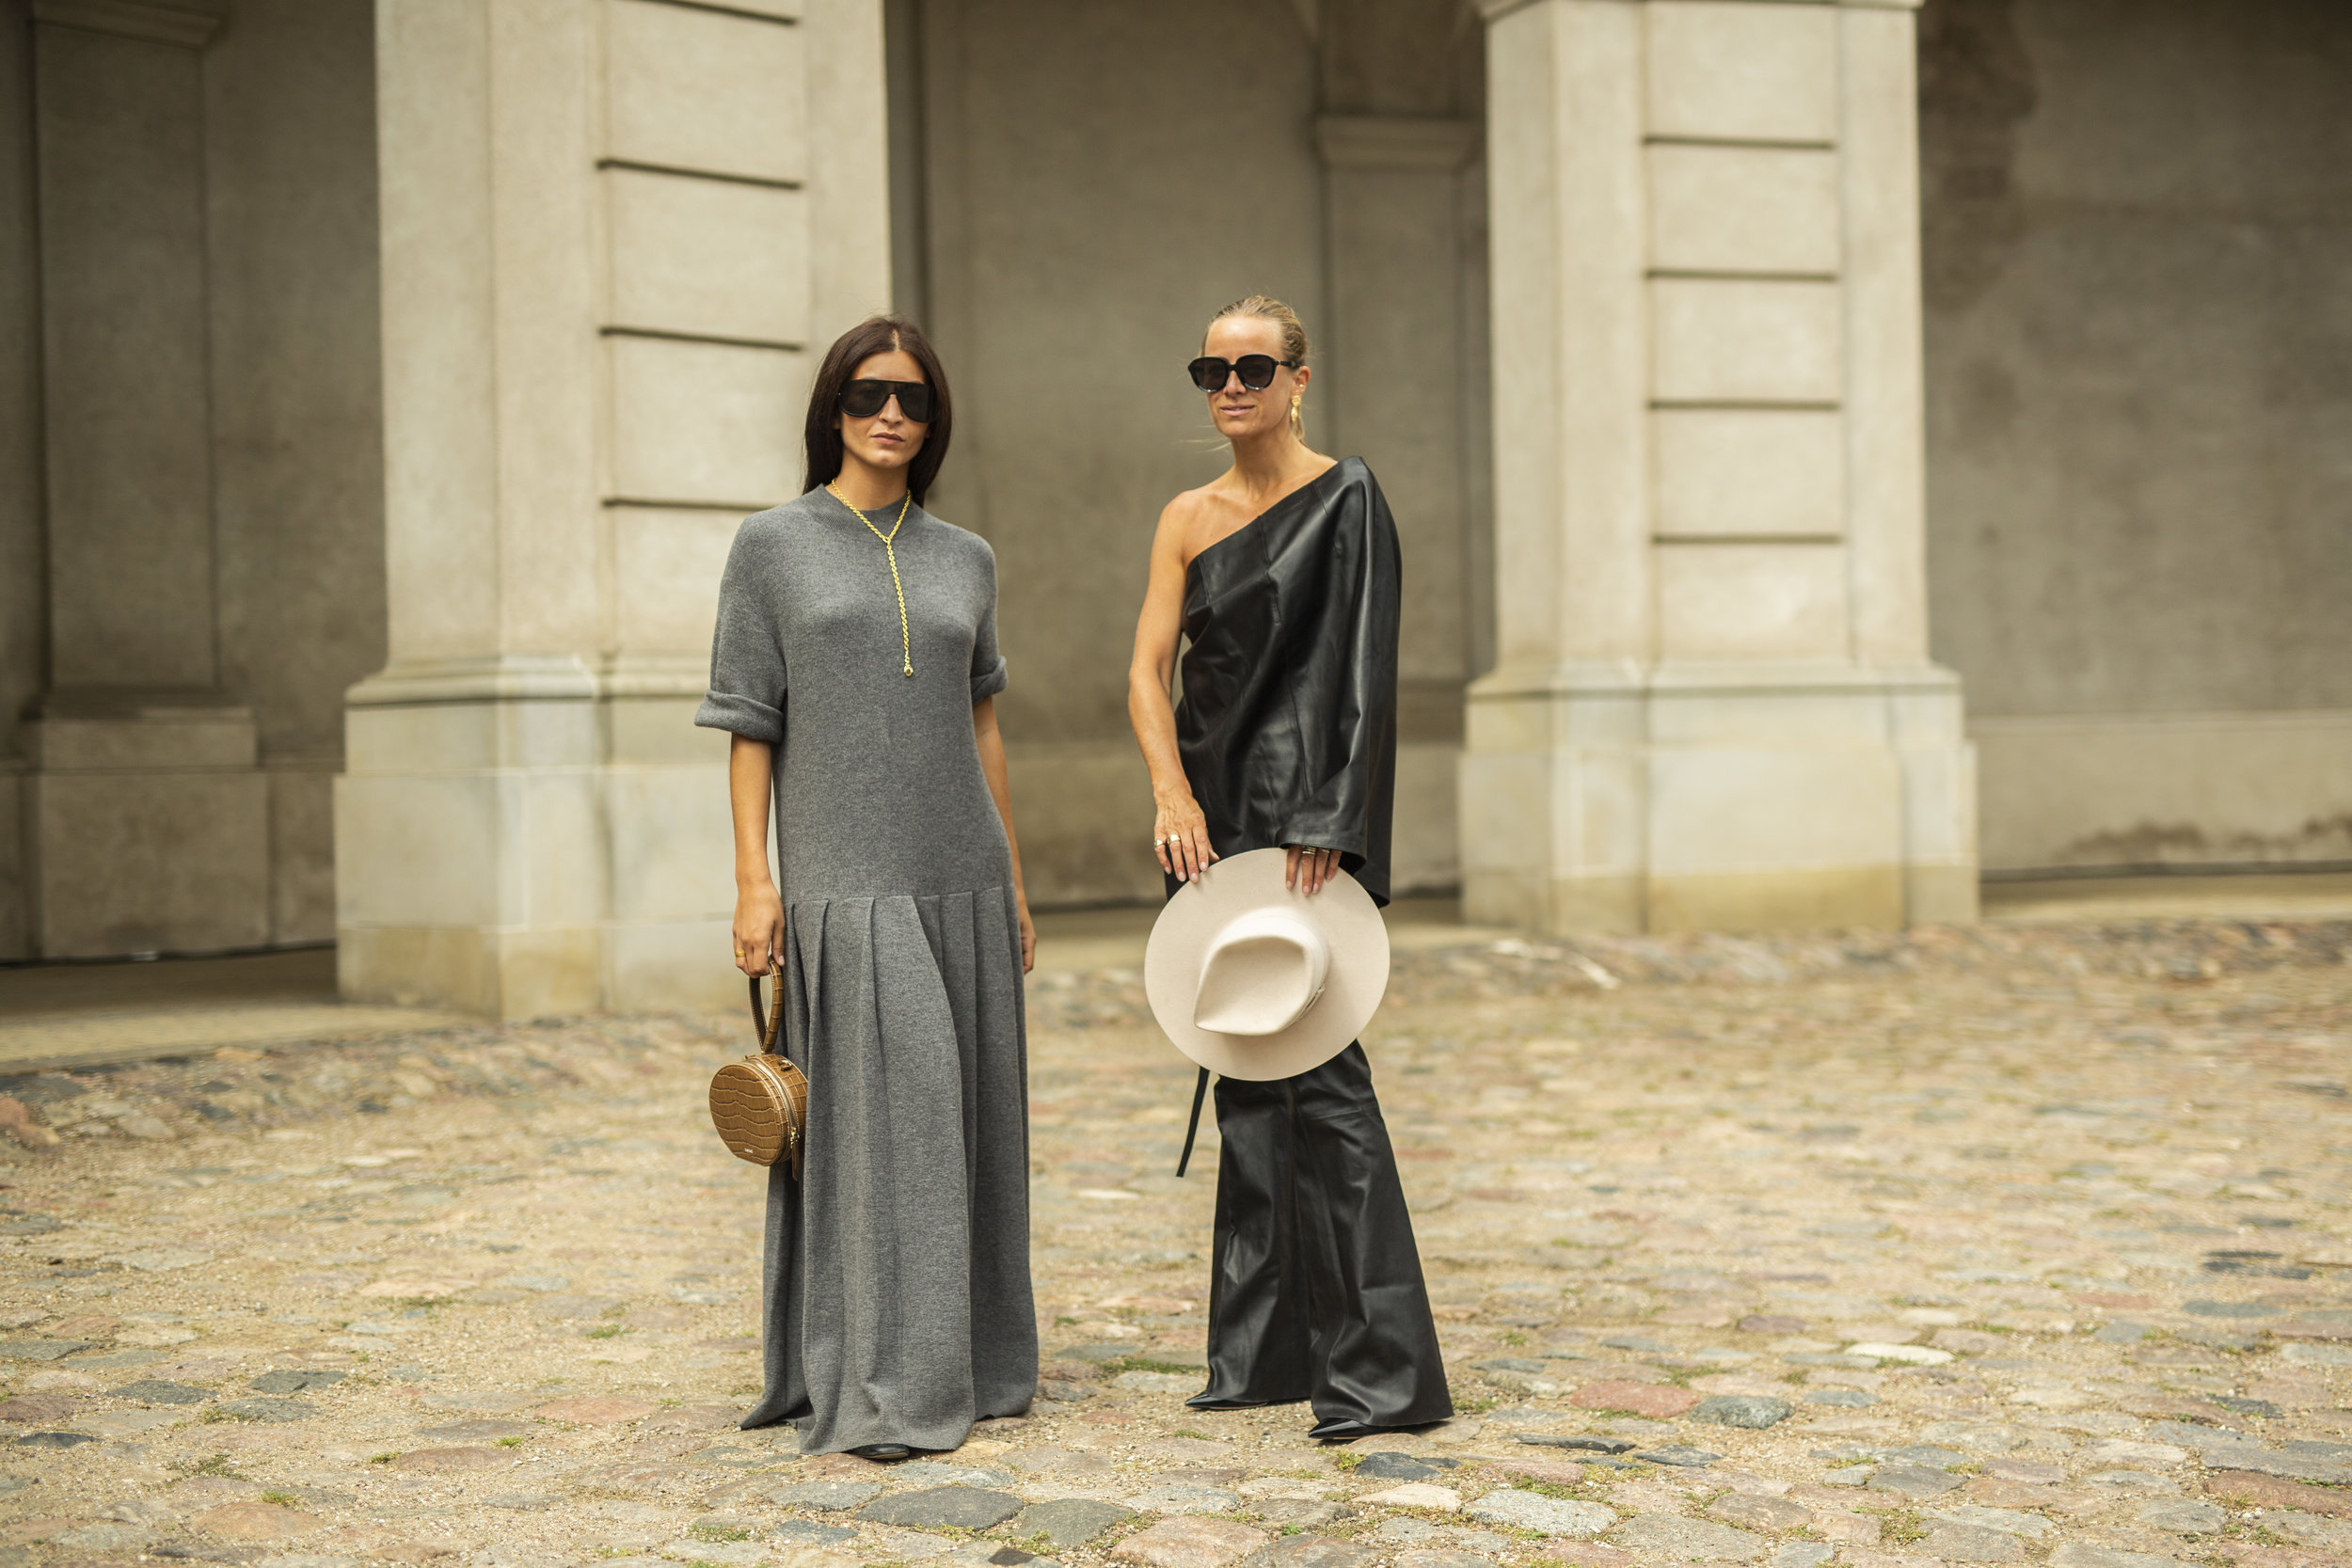 Best street style looks from Copenhagen Fashion Week CPHFW Spring Summer 2020 The Streetland influencer Celina Aagaard and Katarina Petrovic